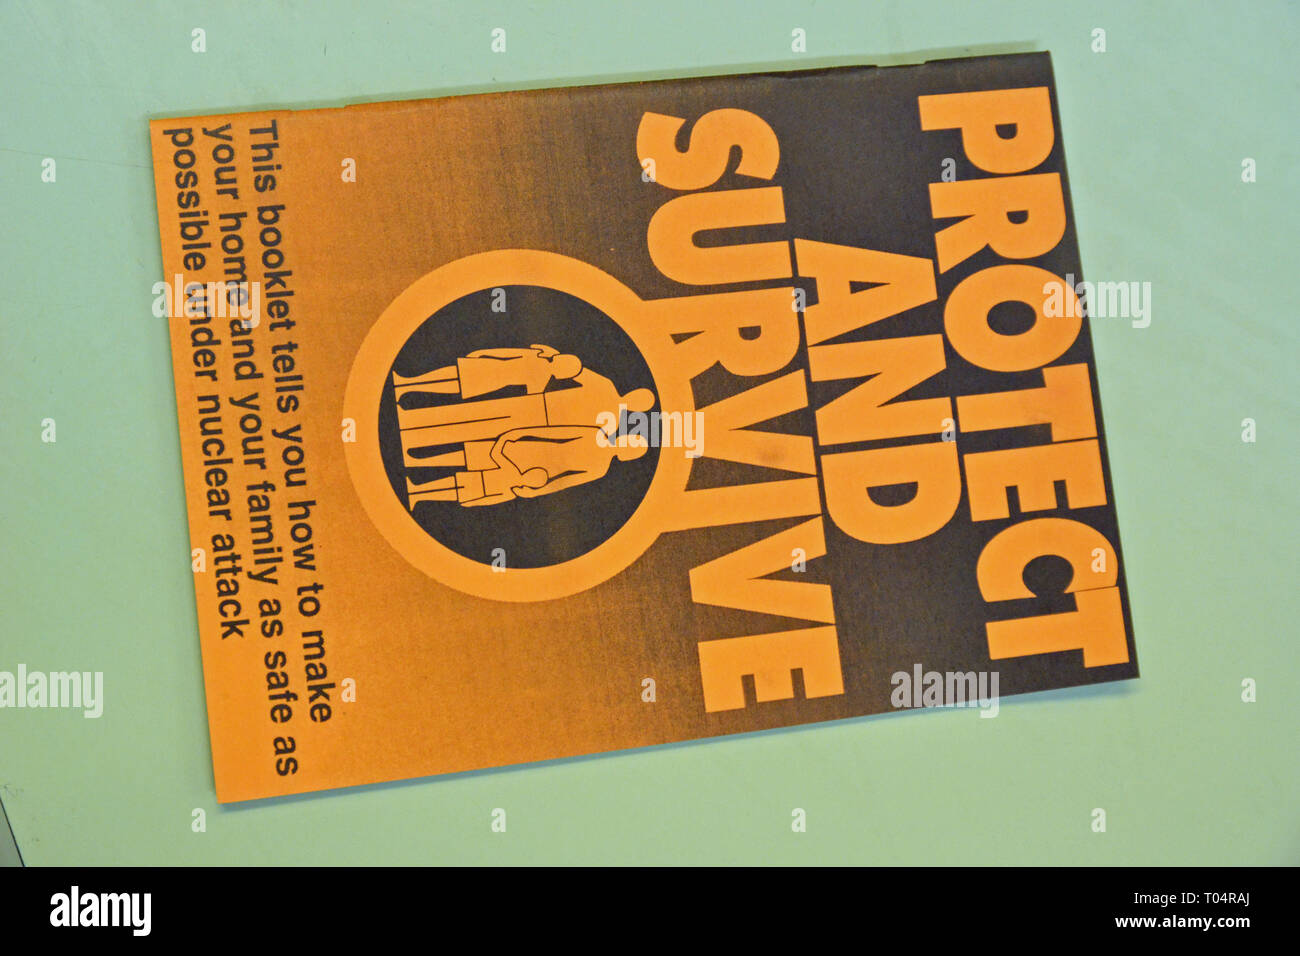 Protect and Survive Booklet in the Kelvedon Hatch Secret Nuclear Bunker, Brentwood, Essex, UK - Stock Image